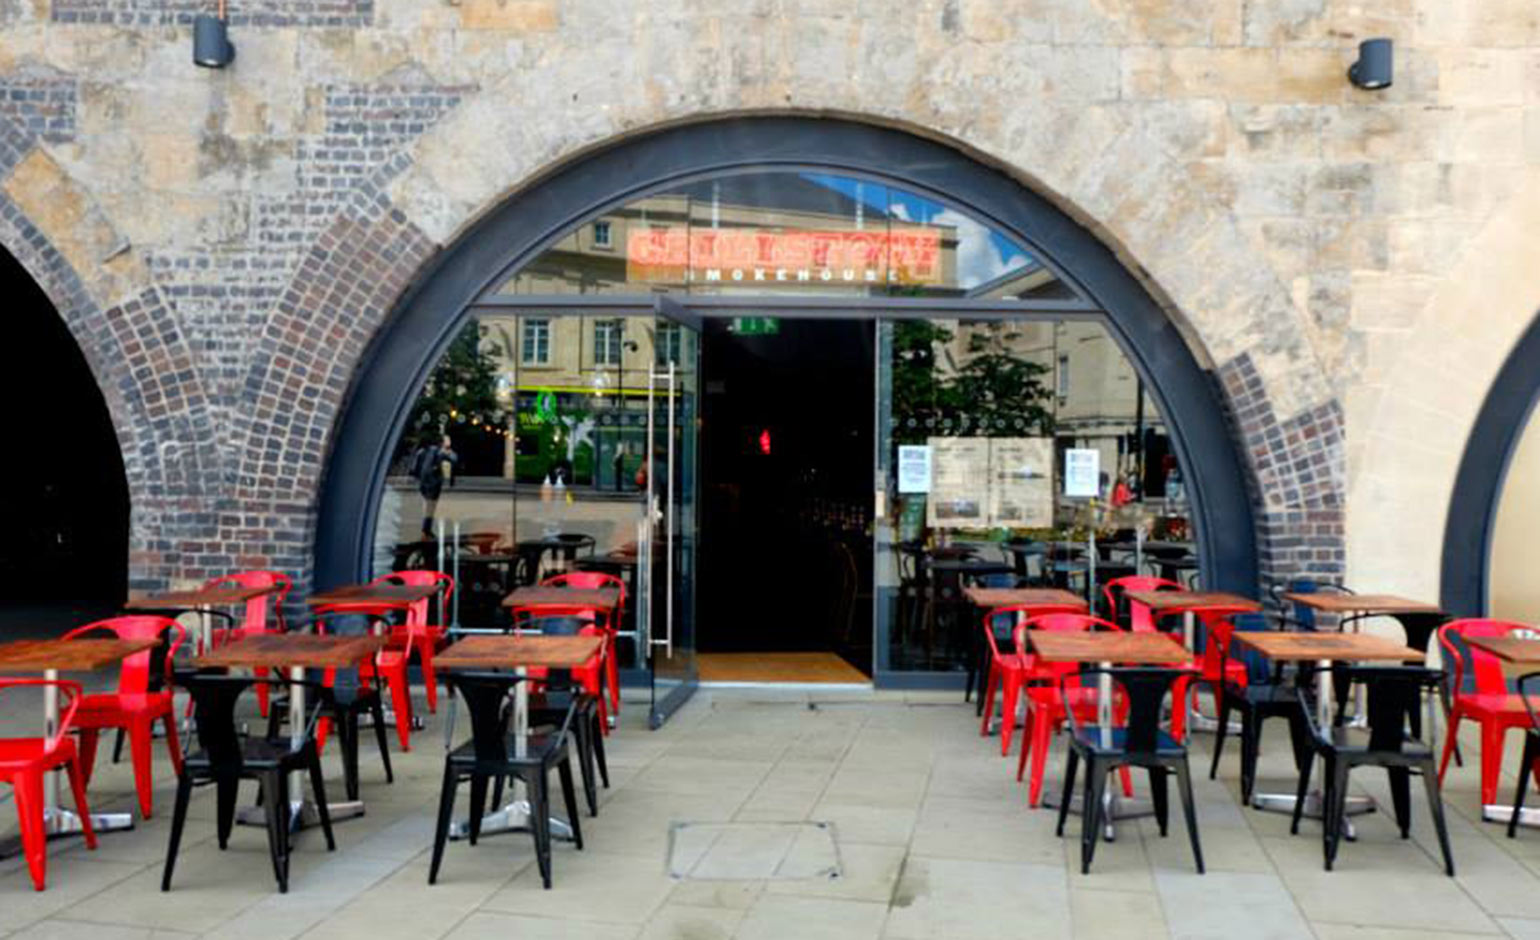 Future of Bath's Grillstock restaurant in doubt after chain goes into administration